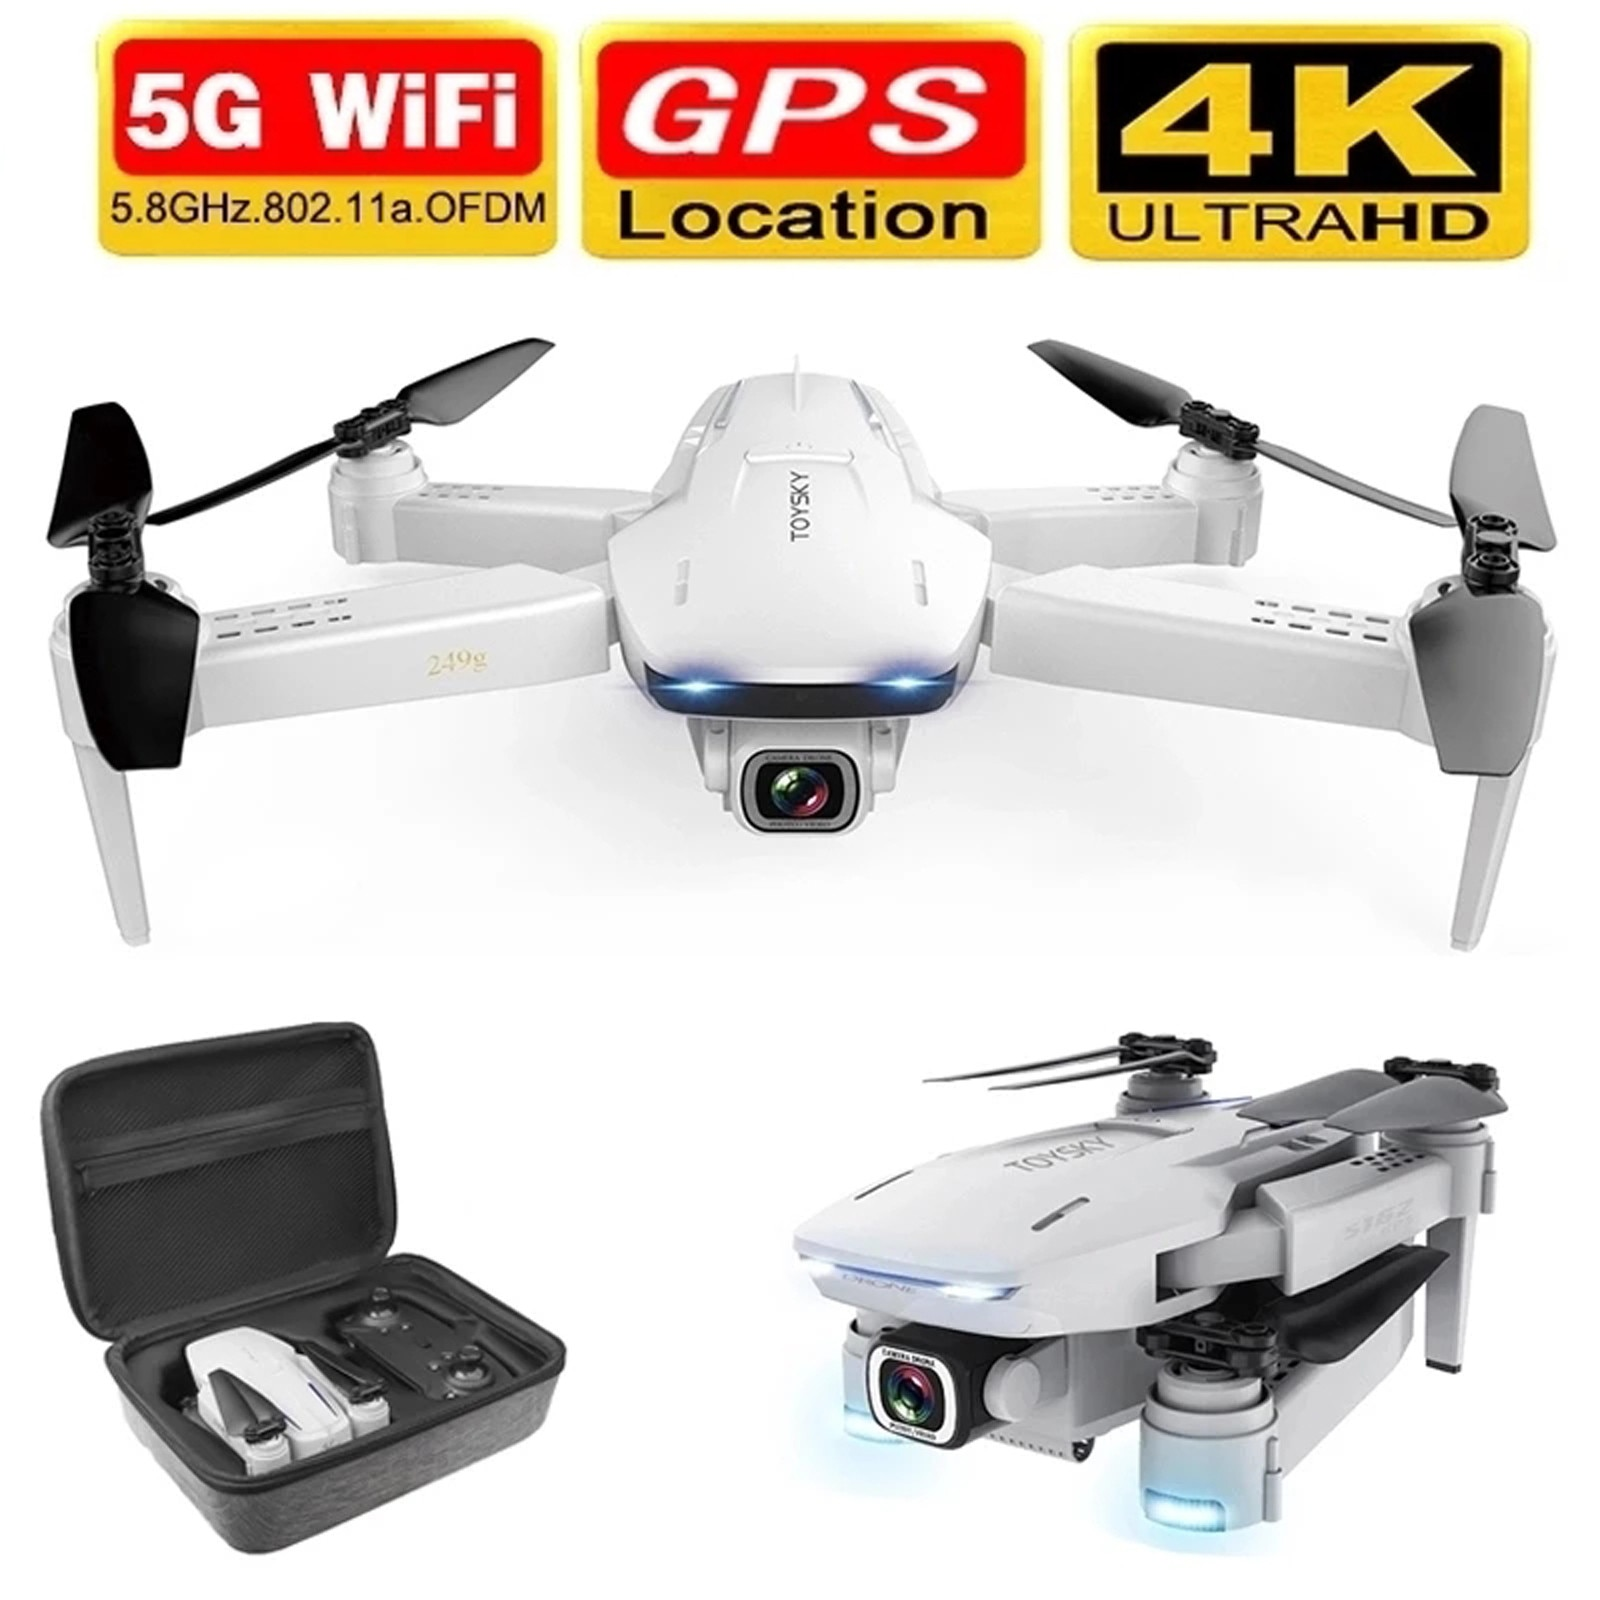 S162 Professional Gps 4k Hd Camera Drone Brushless Motor 5g Wifi Fpv Foldable RC Quadcopter Dron Remote Control Helicopter #F